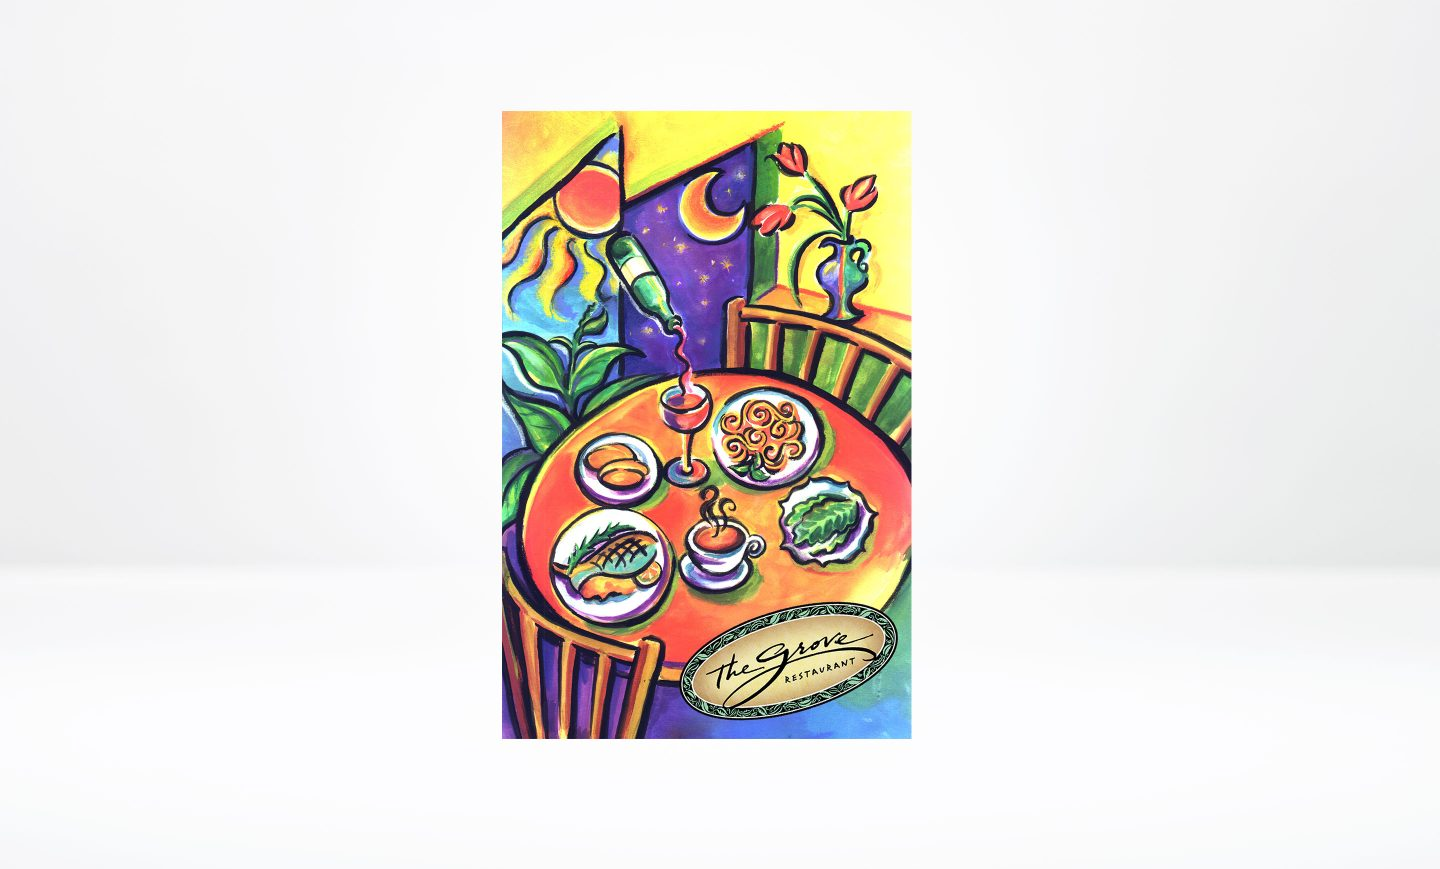 The Grove Restaurant – Menu Cover